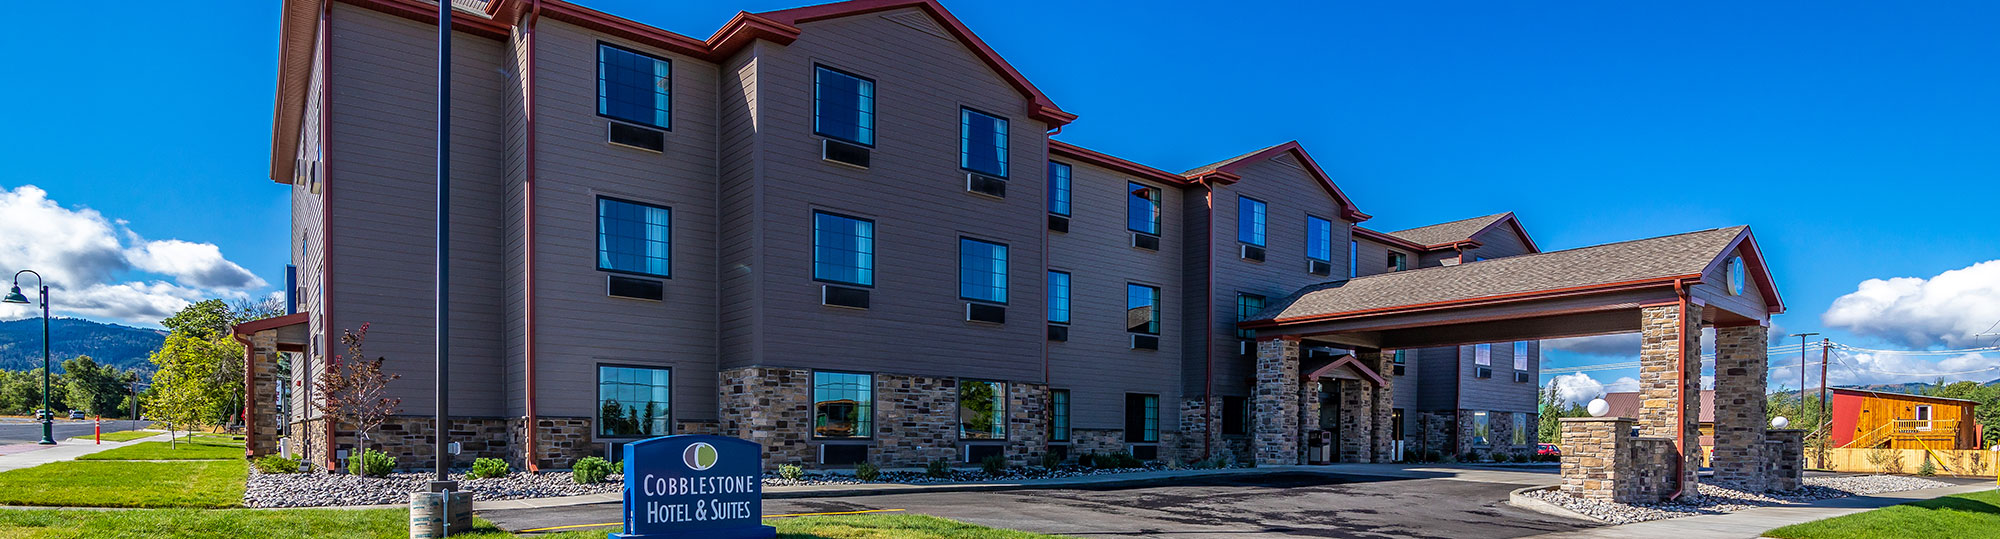 Cobblestone Hotel And Suites In Victor Idaho Hotel Accomodations